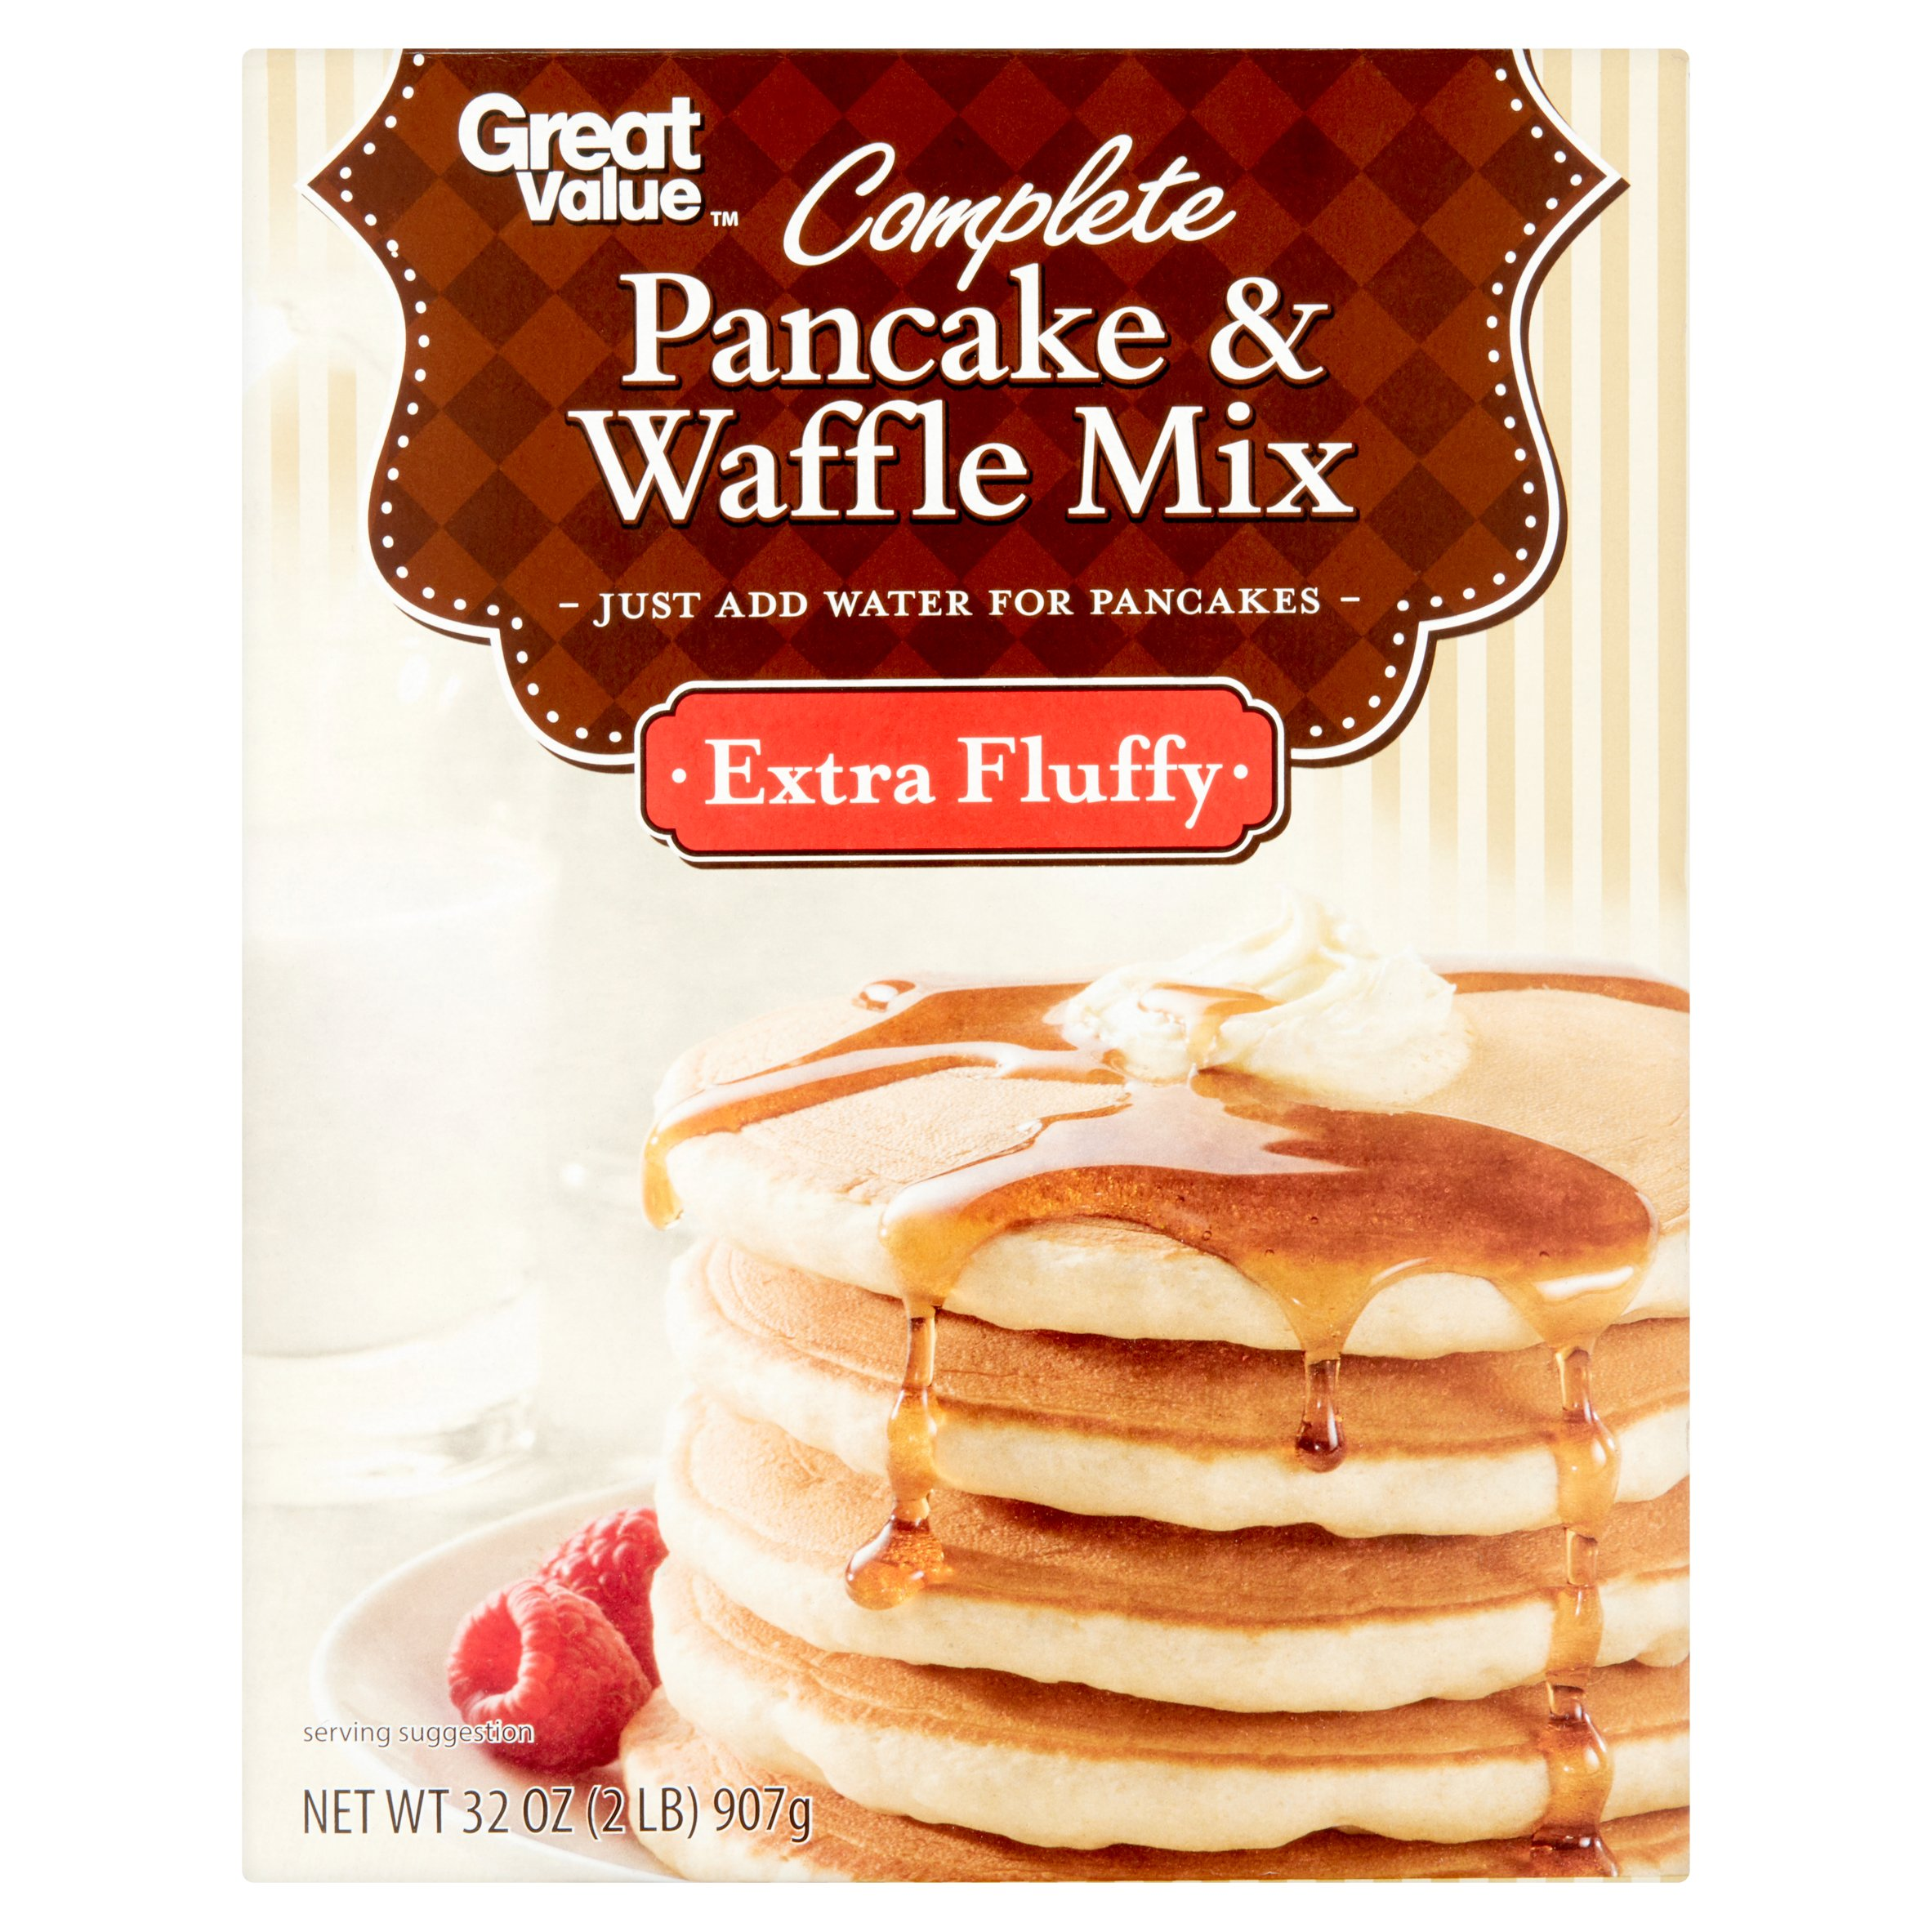 (12 Pack) Great Value Complete Pancake & Waffle Mix 32 oz